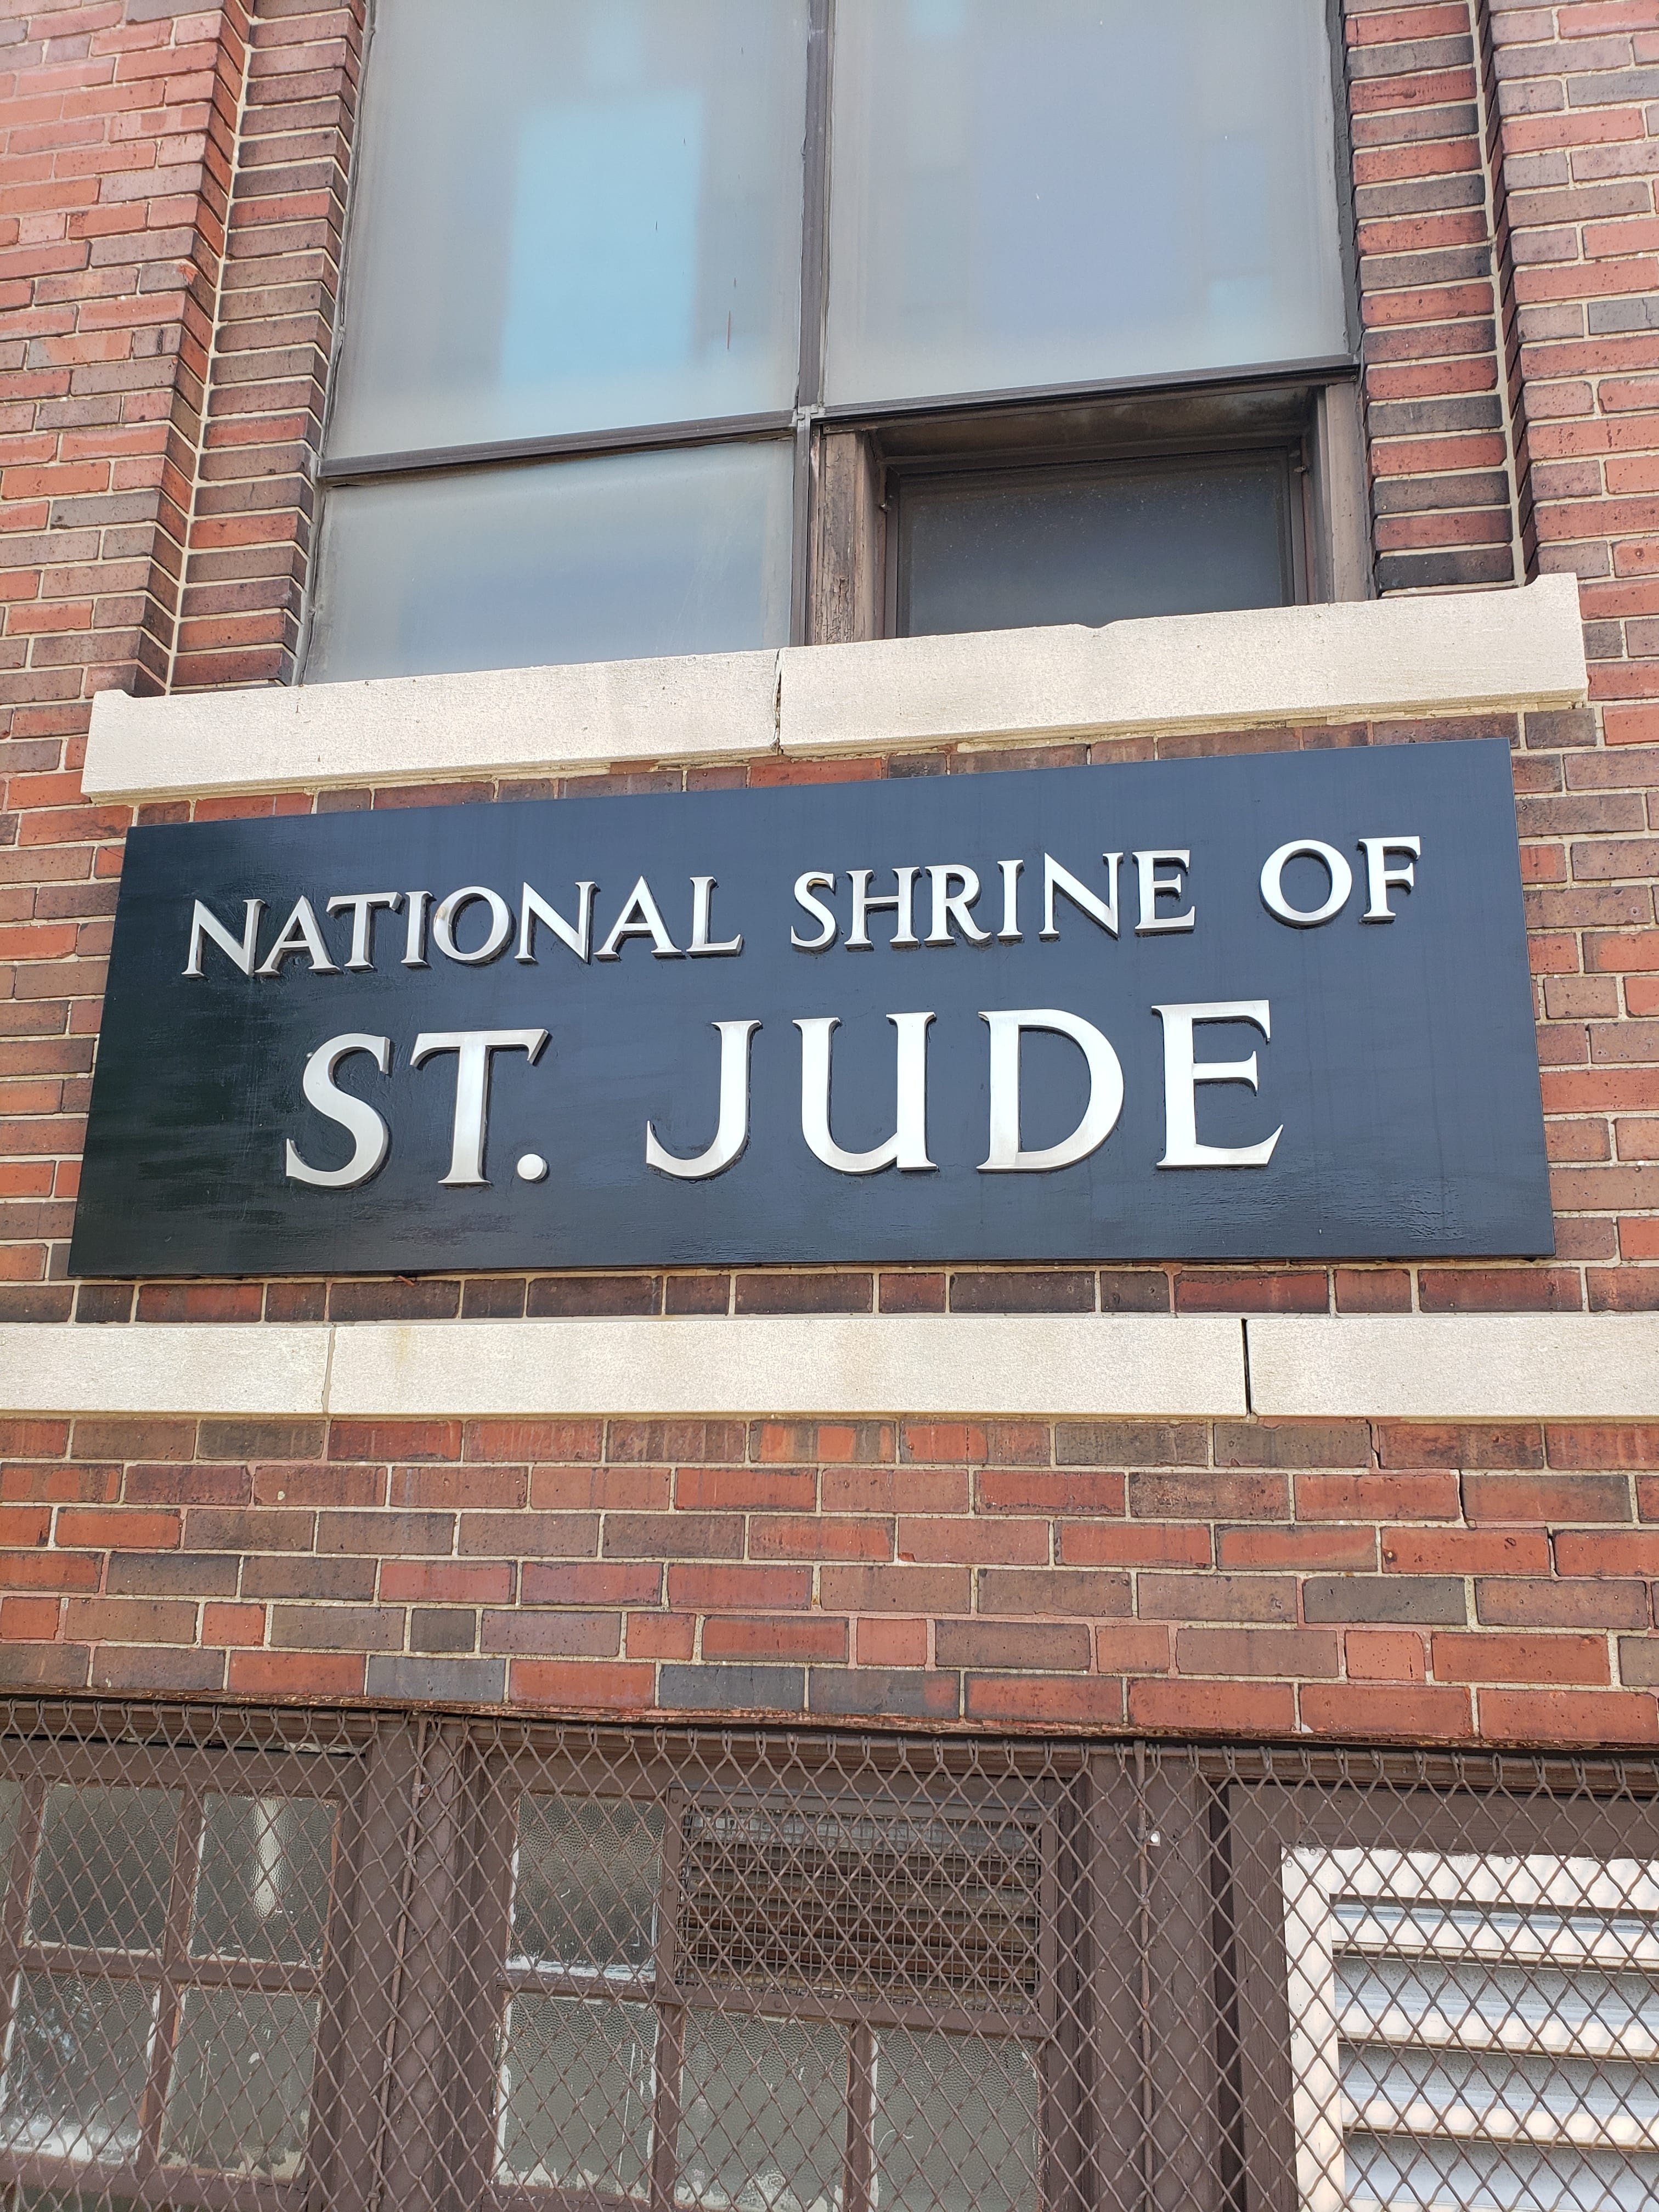 On the left-hand side of the building, a sign indicating the church's historic role as a center of devotion to Saint Jude is prominent.